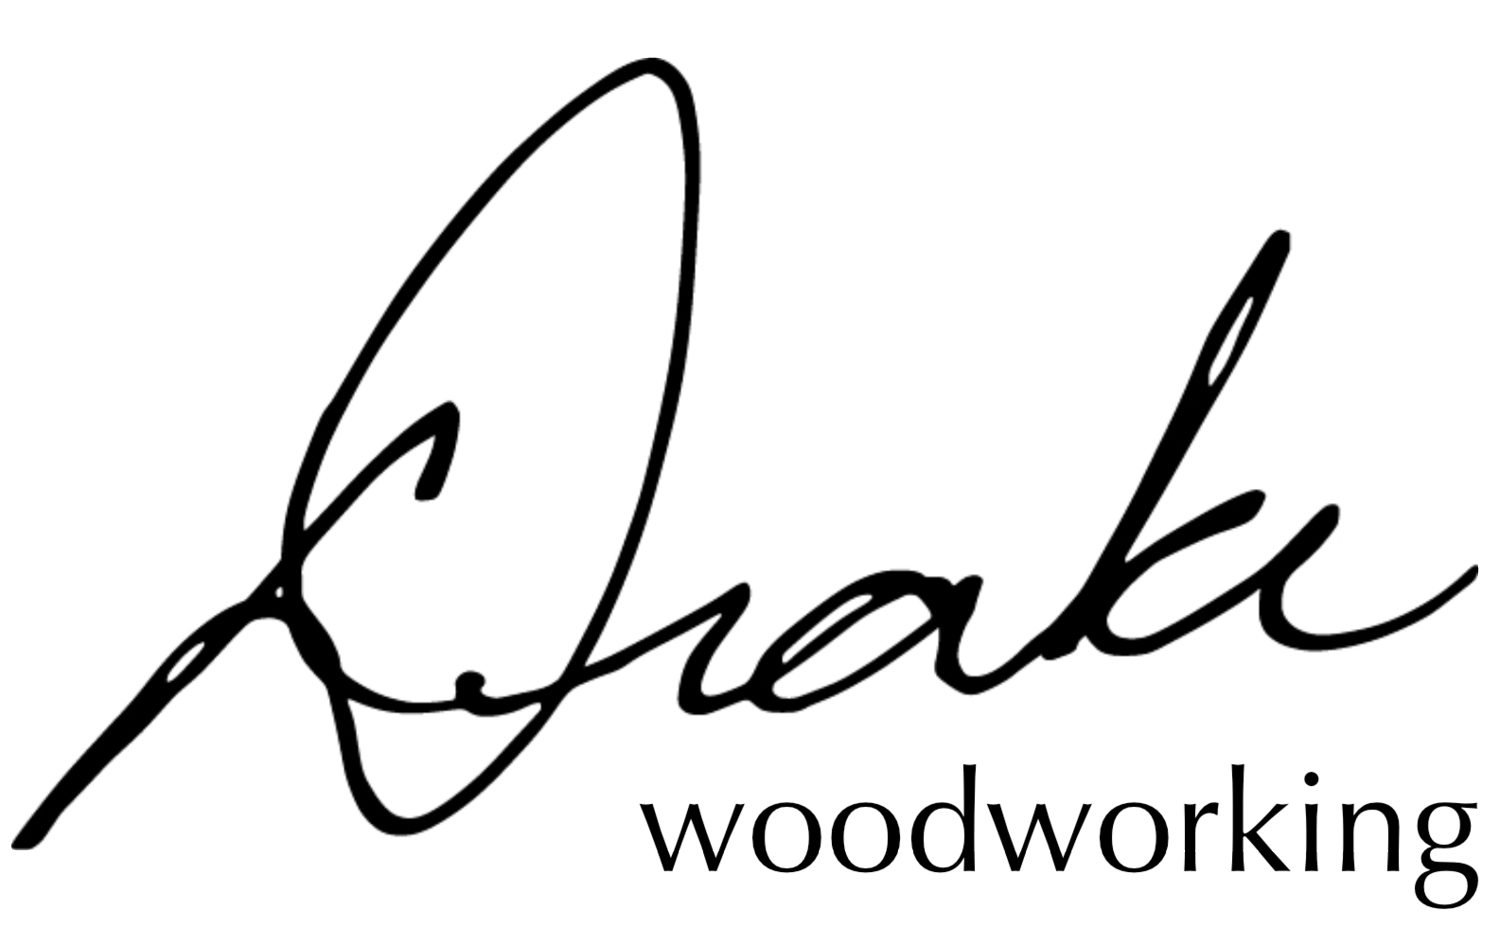 Drake Woodworking